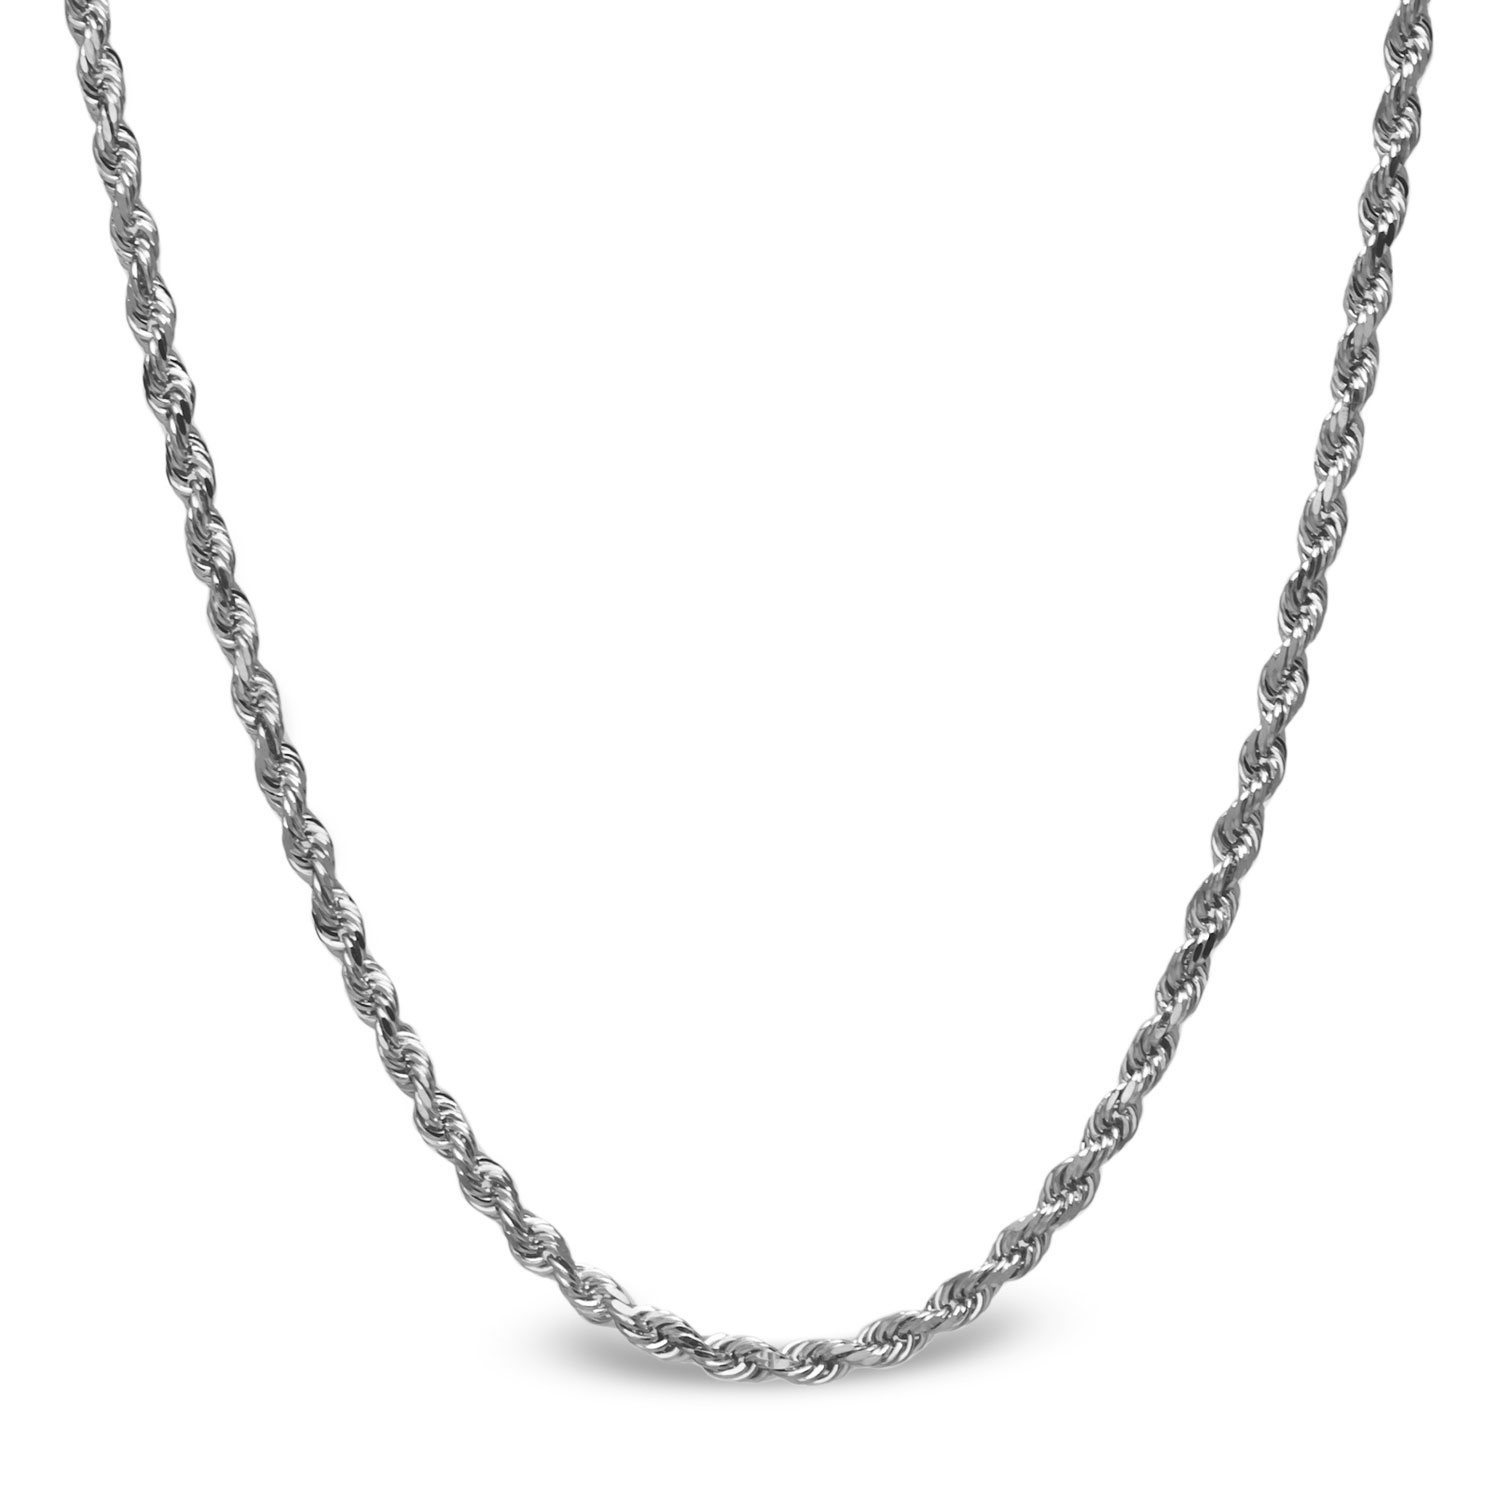 Diamond Cut Rope Sterling Silver Necklace - 18 in.